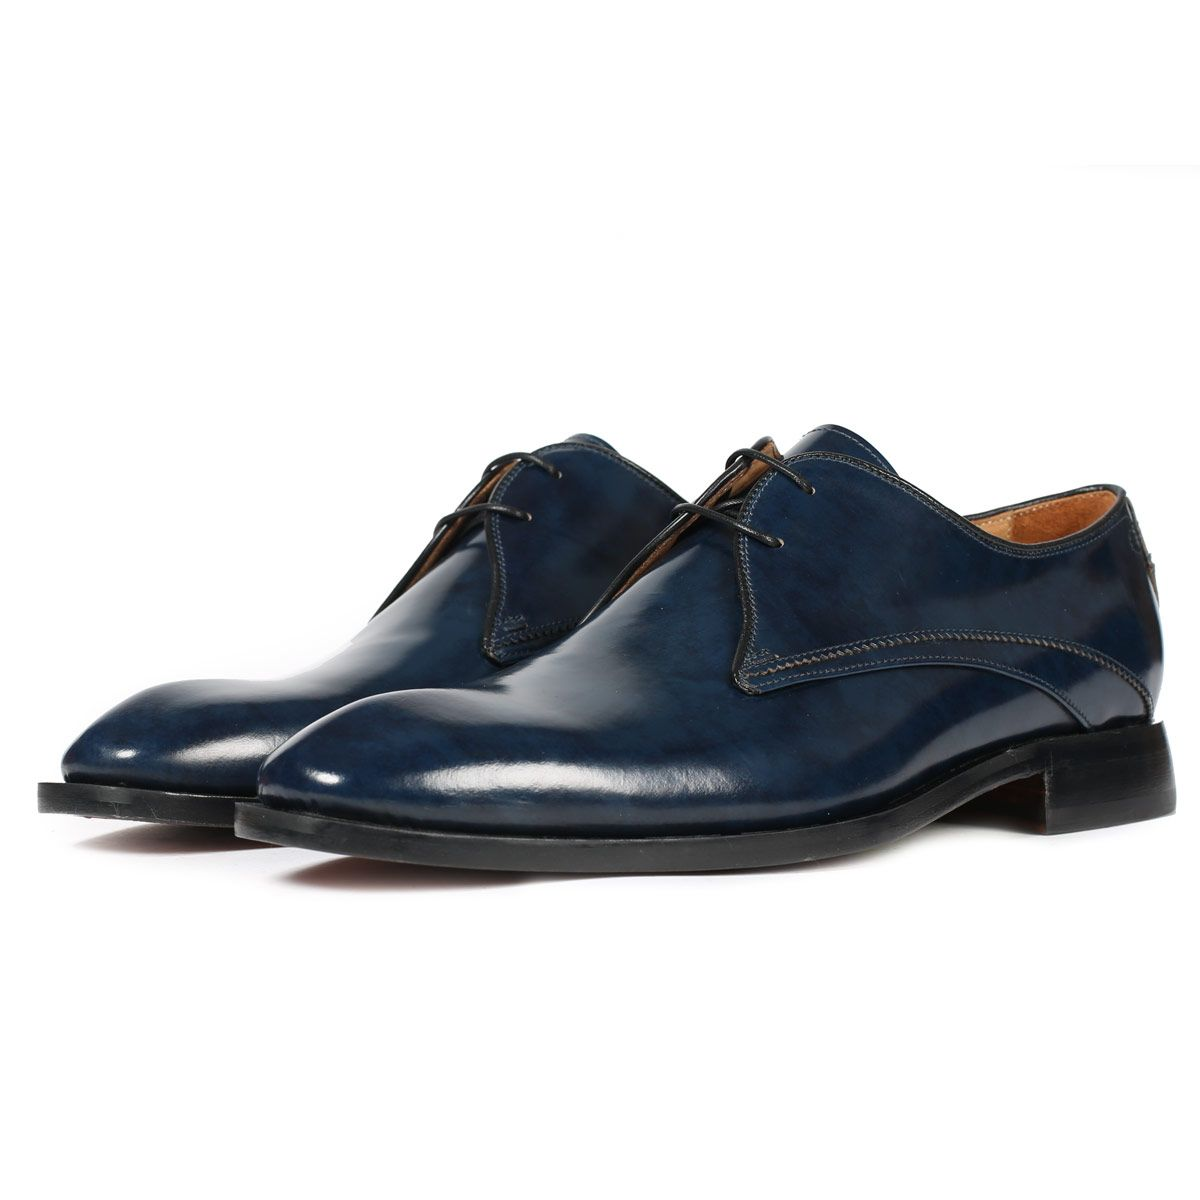 Oliver Sweeney Deliceto Navy - Antiqued Calf Leather Shoe